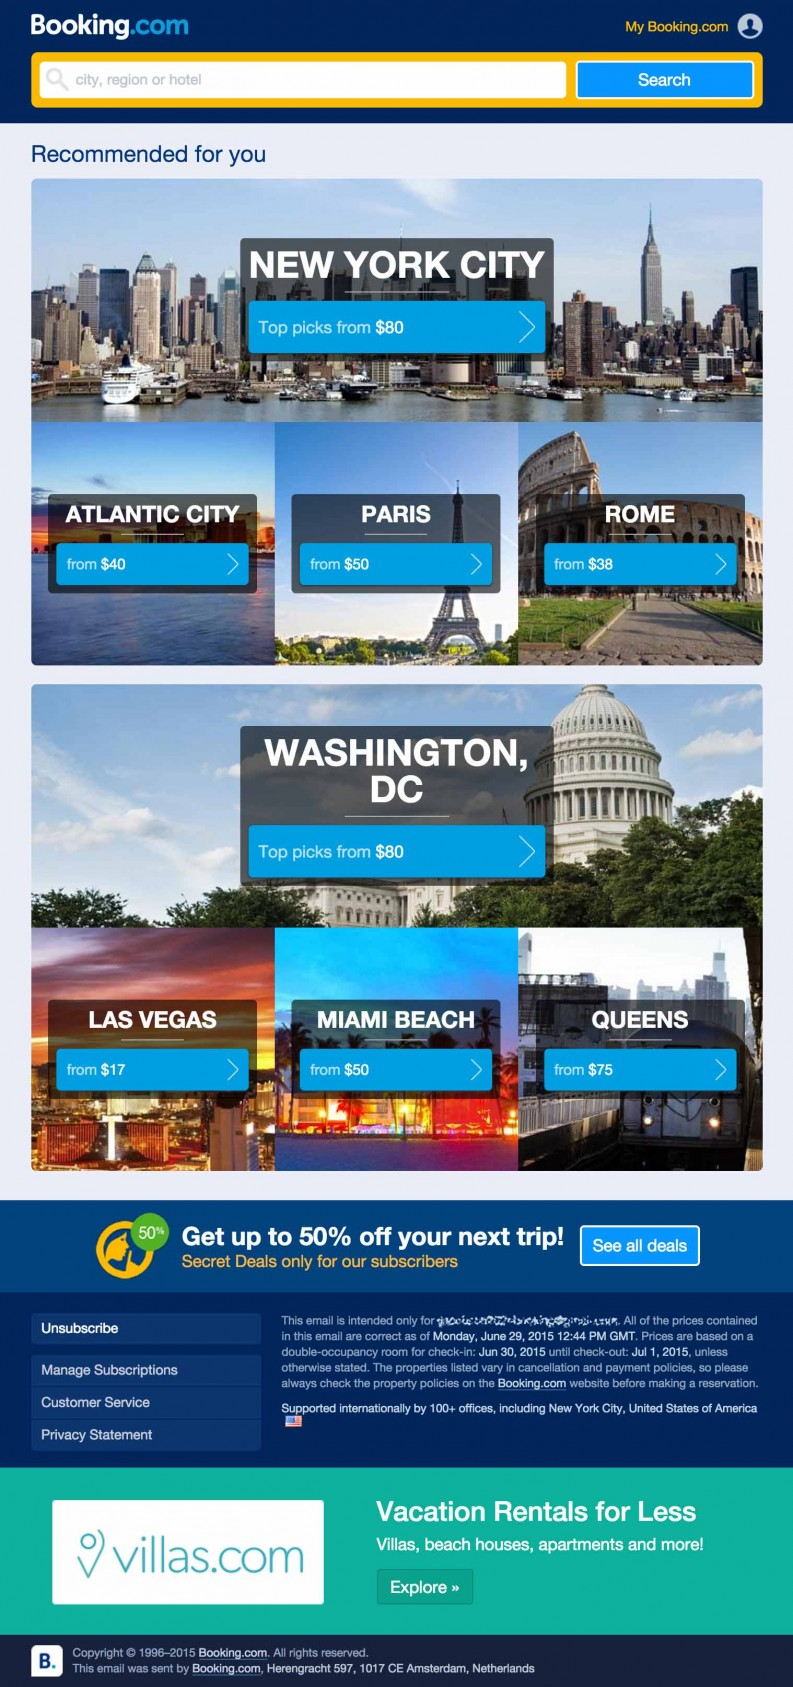 BookingCom Hotel Travel email imarketing